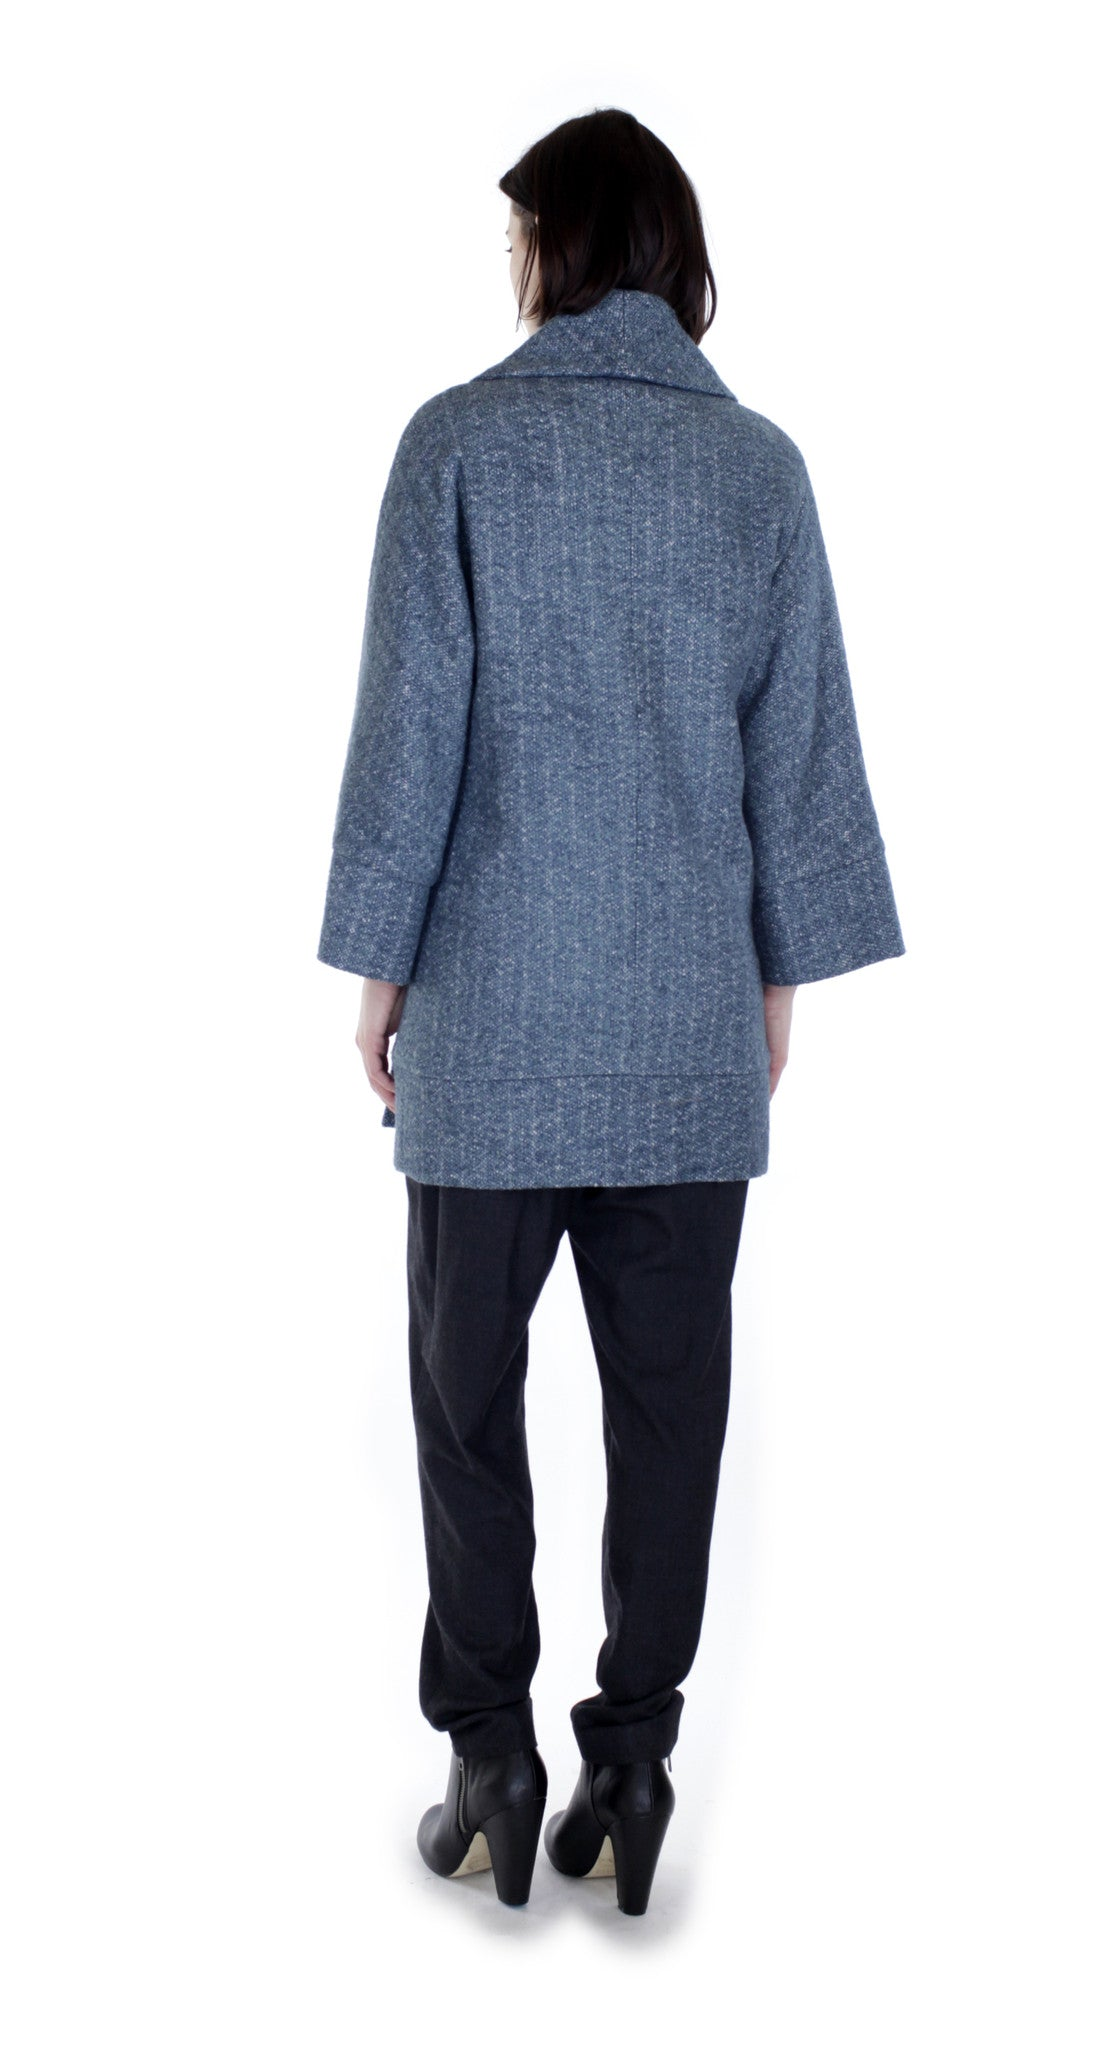 Novelty Textured Swing Coat/ Blue